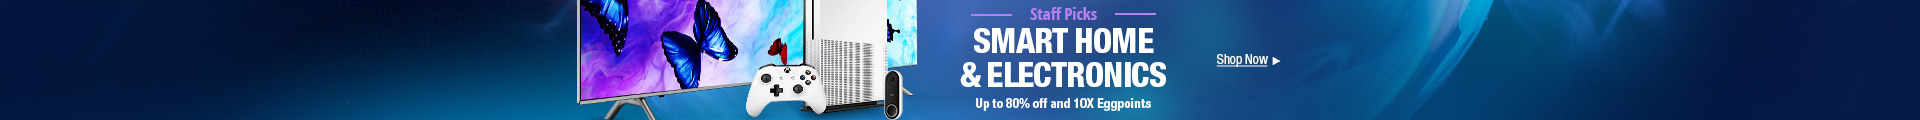 Smart Home & Electronics - Up to 80% Off